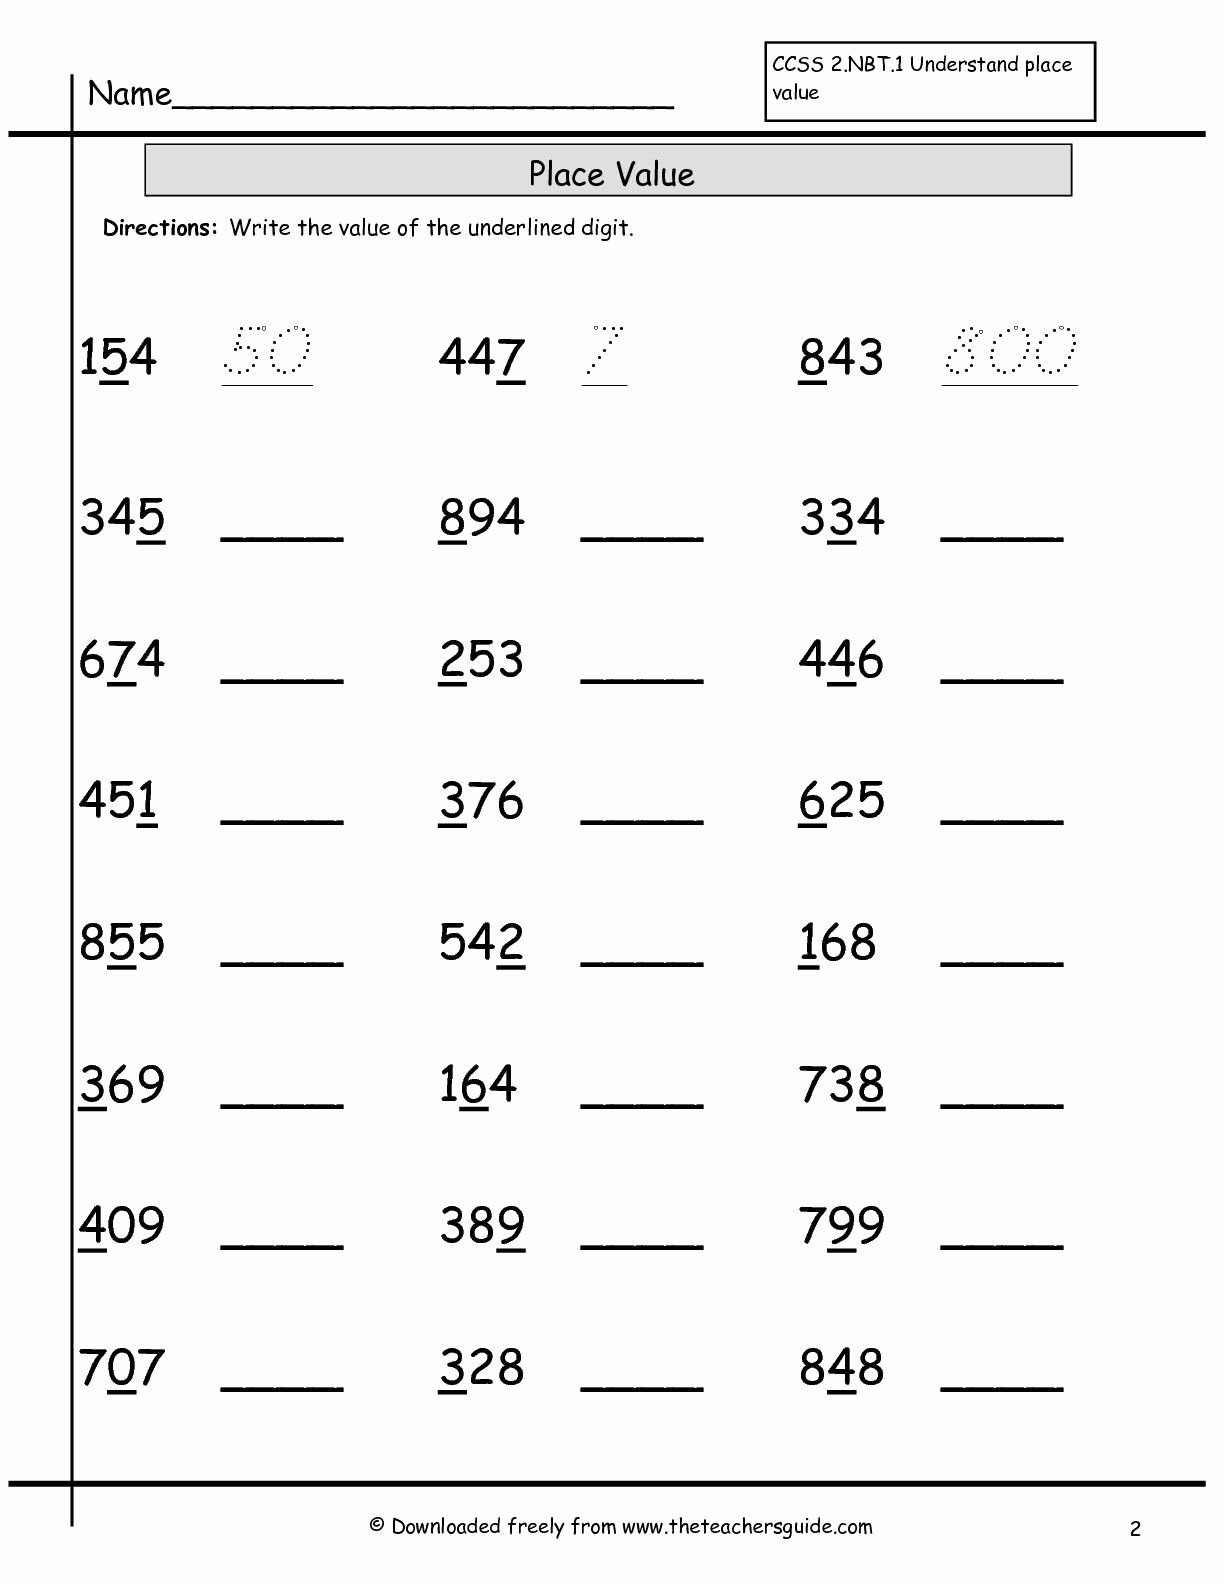 Place Value Worksheet 3rd Grade Printable Place Value Worksheets 3rd Grade to Download Place Value